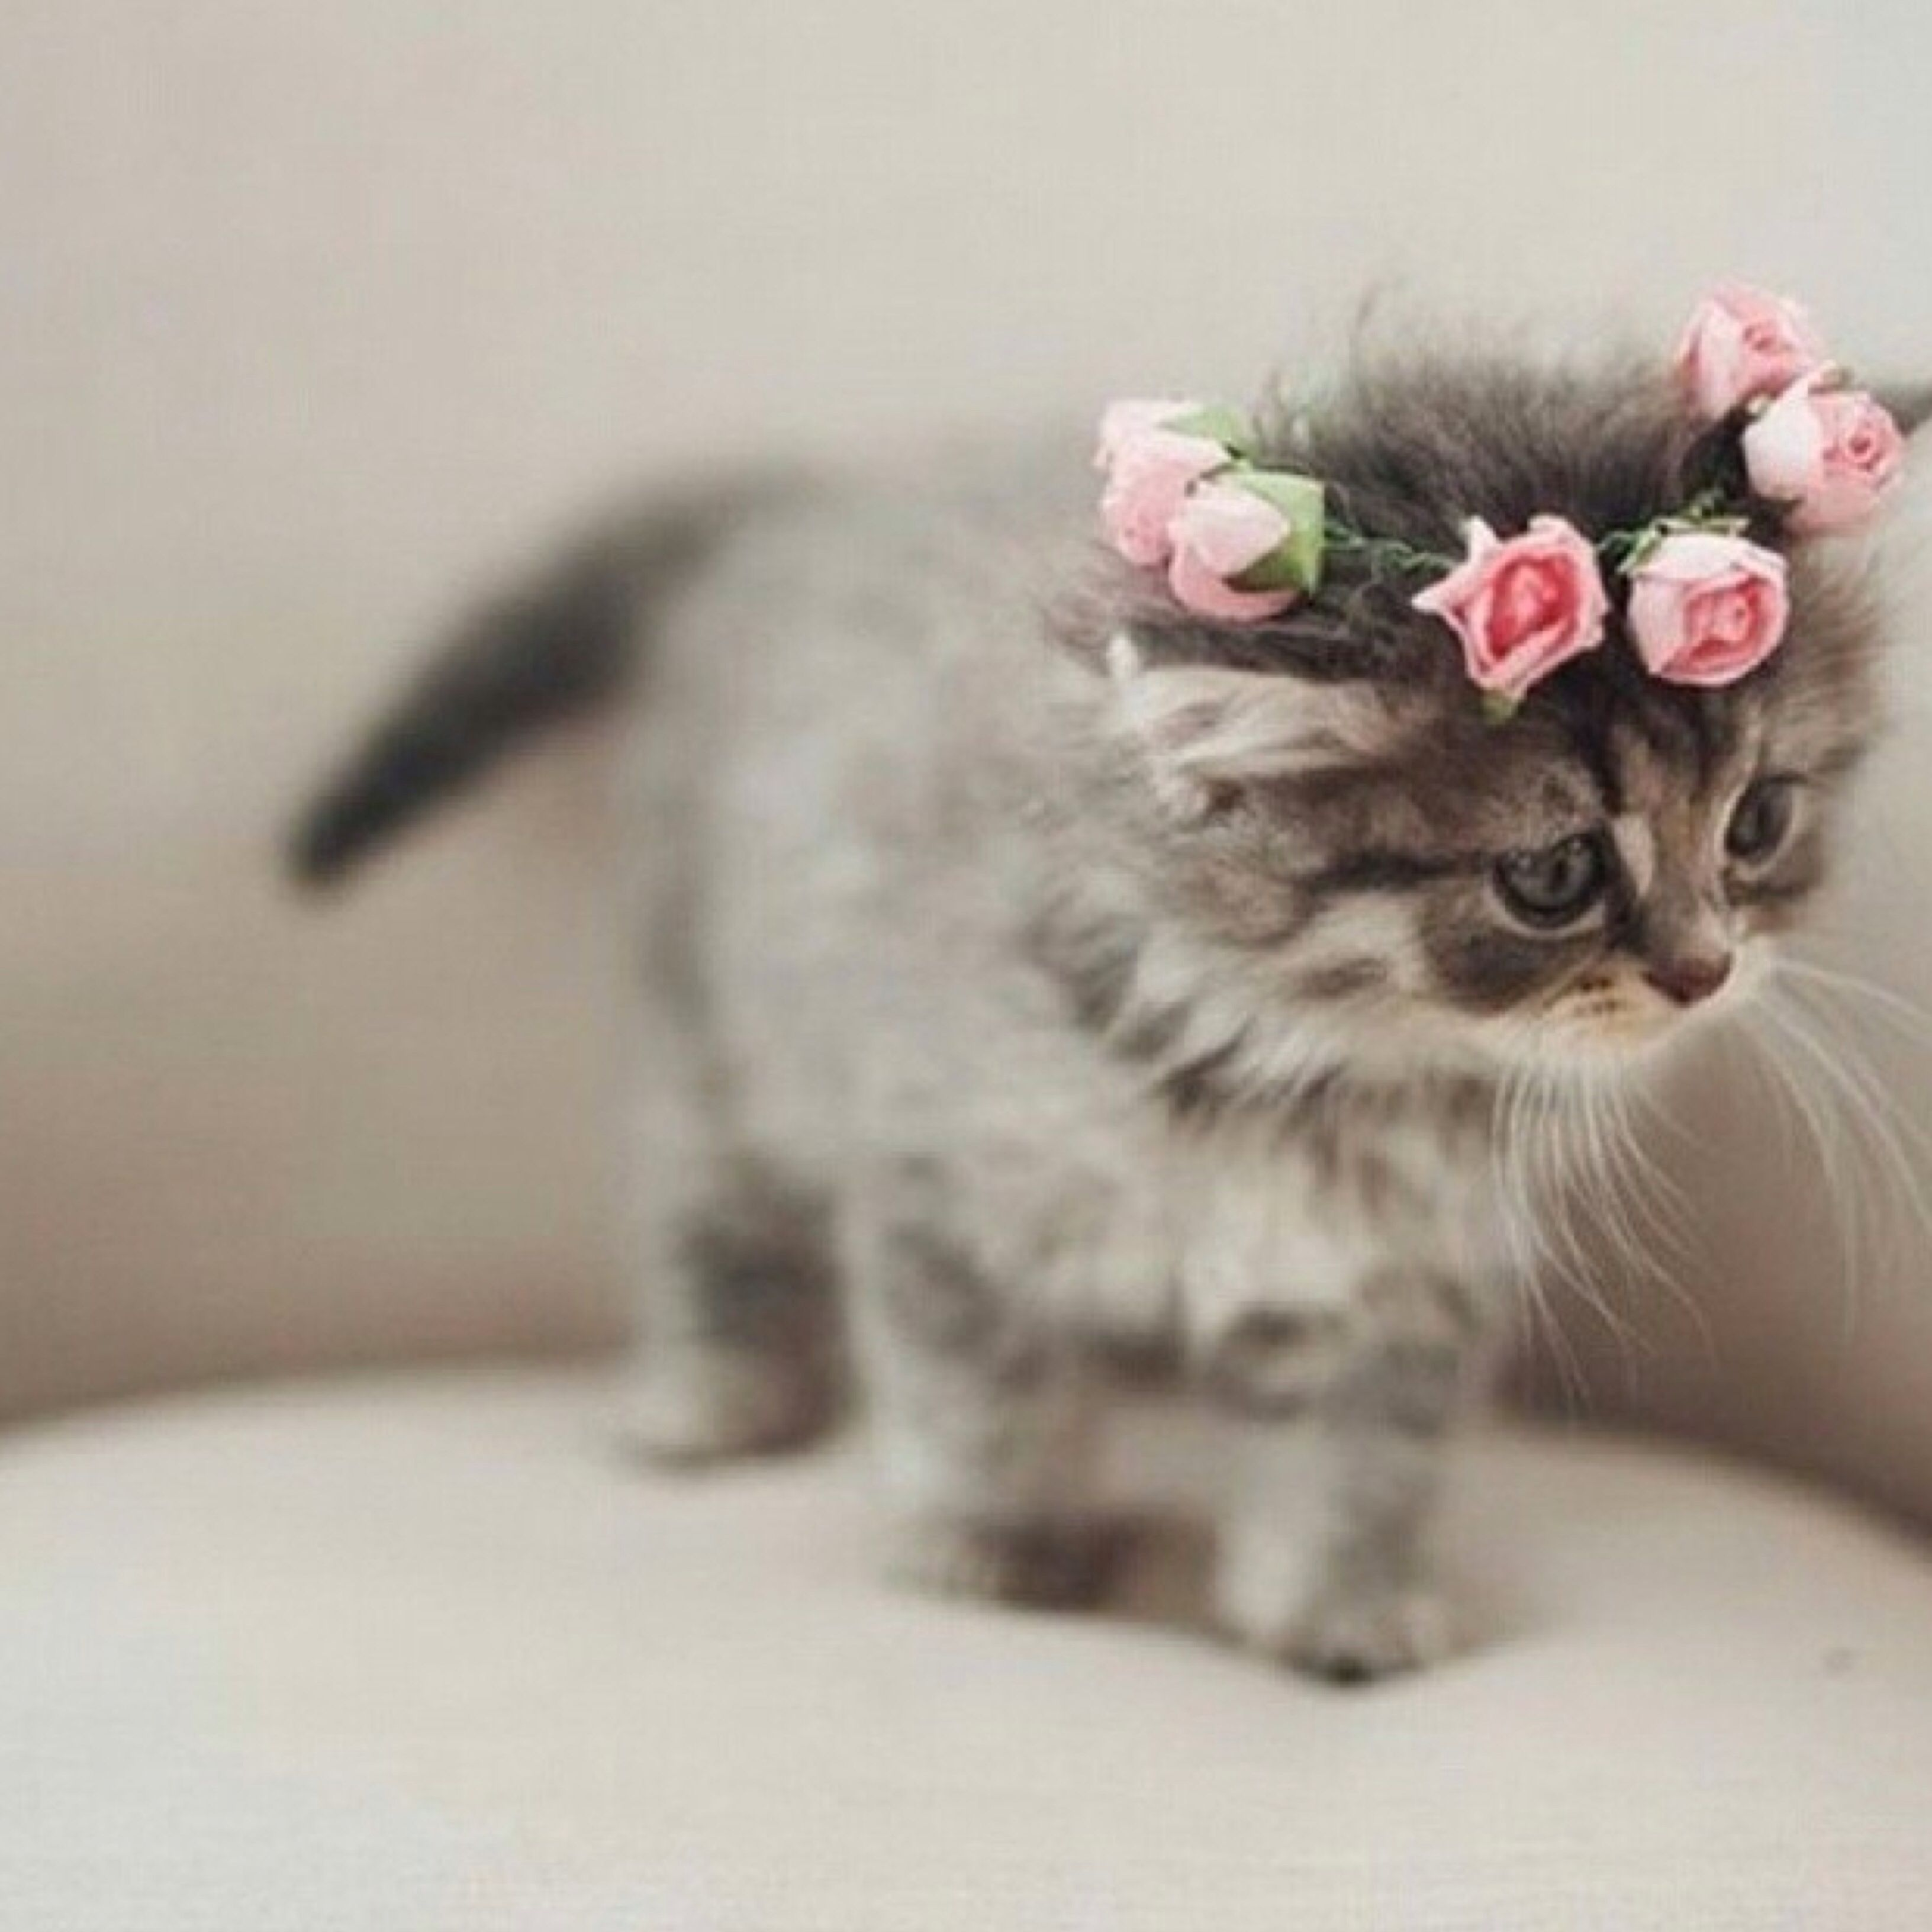 You can look as cute as this one in one of our flower crowns in